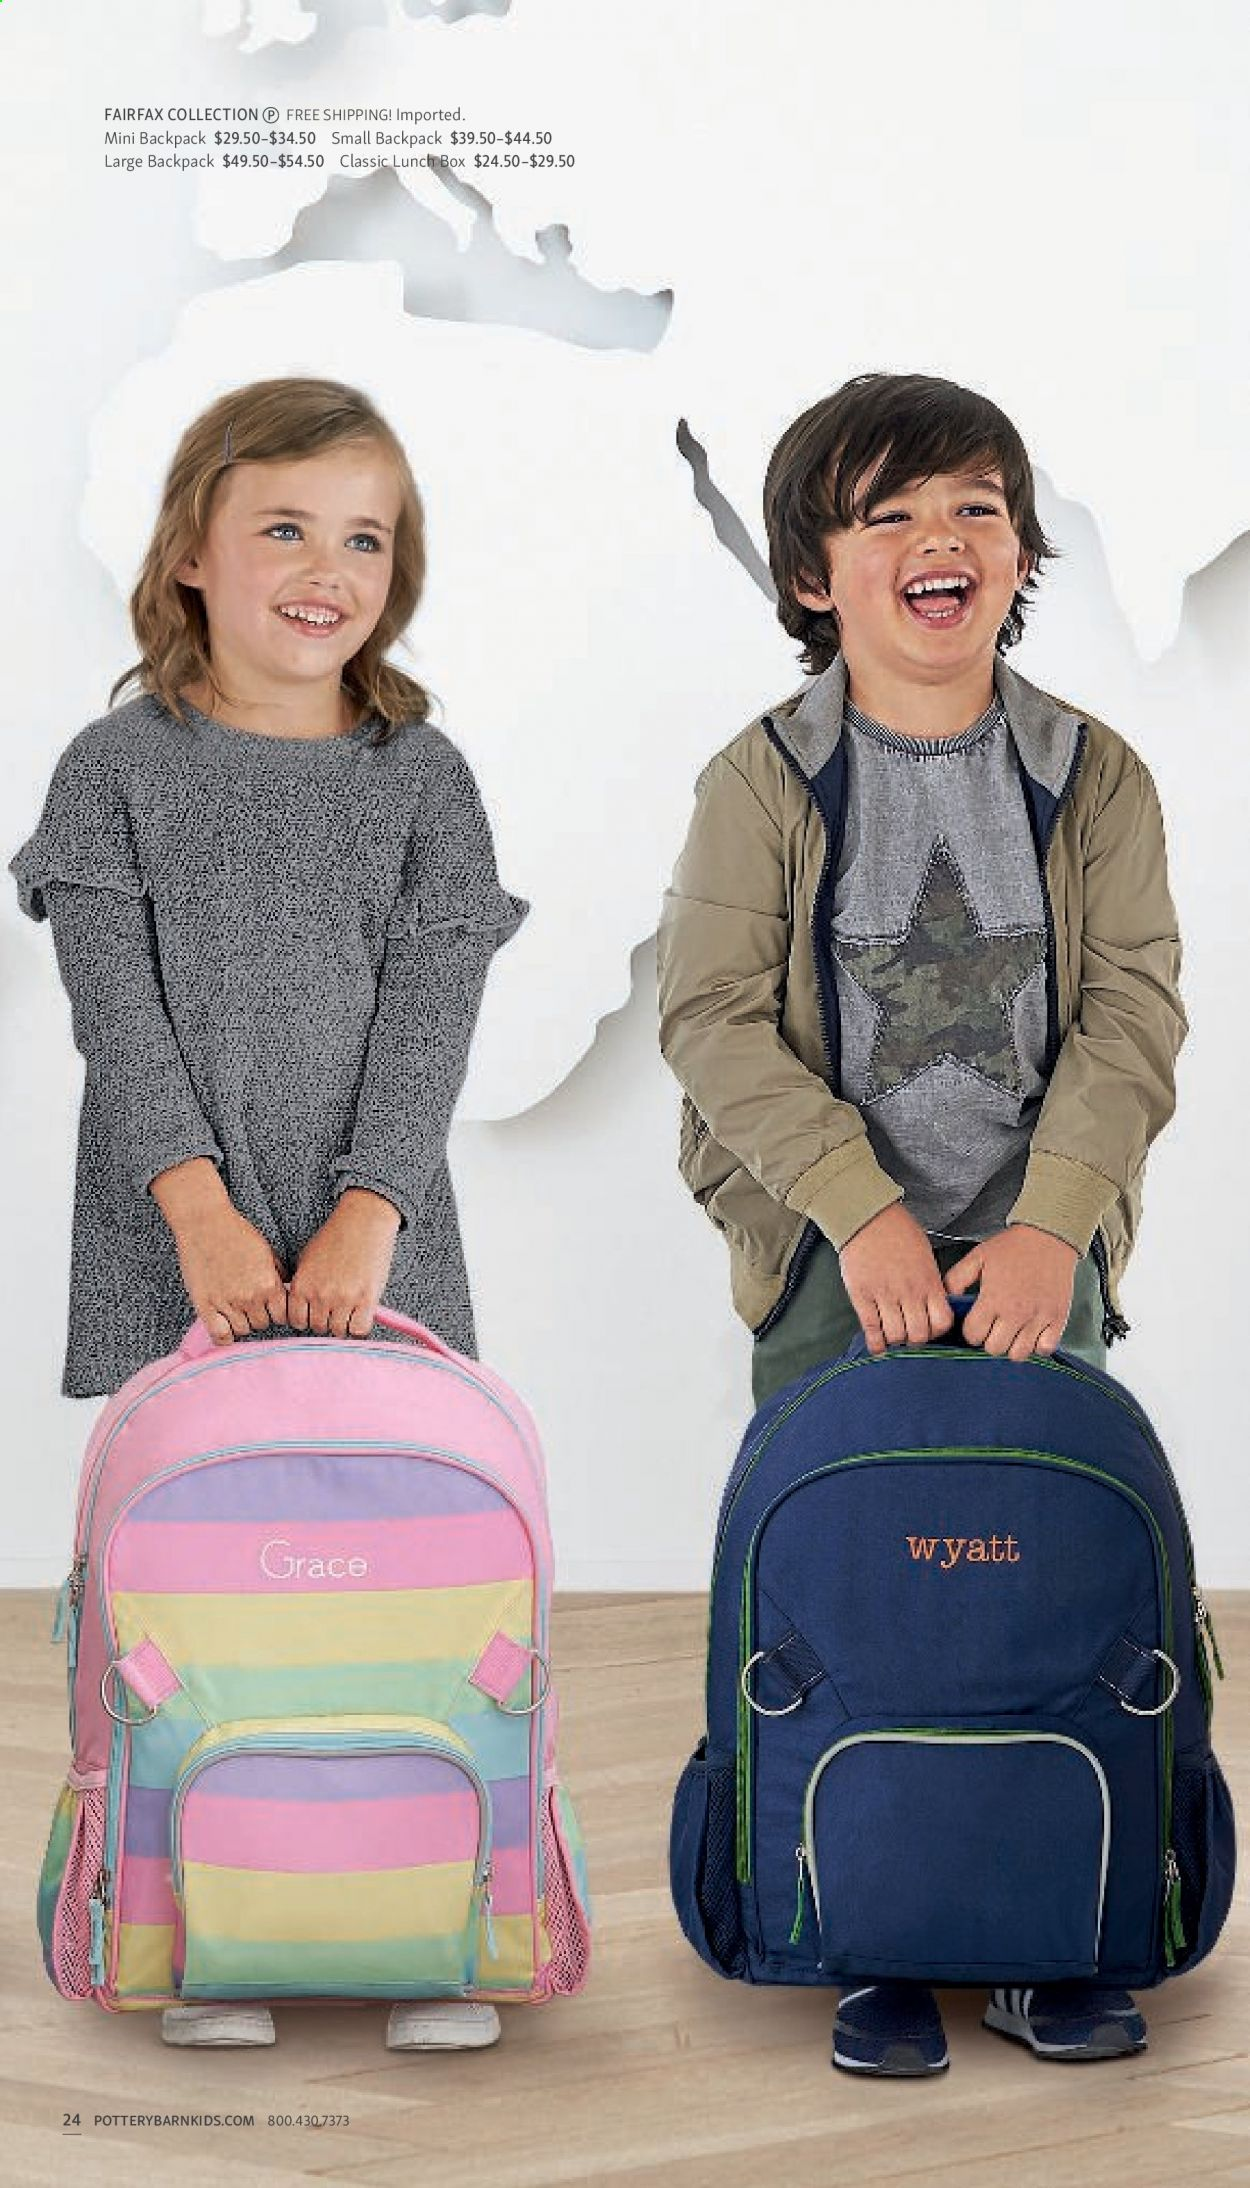 Pottery Barn Ad Kids - Back to School 2021 - Page 24